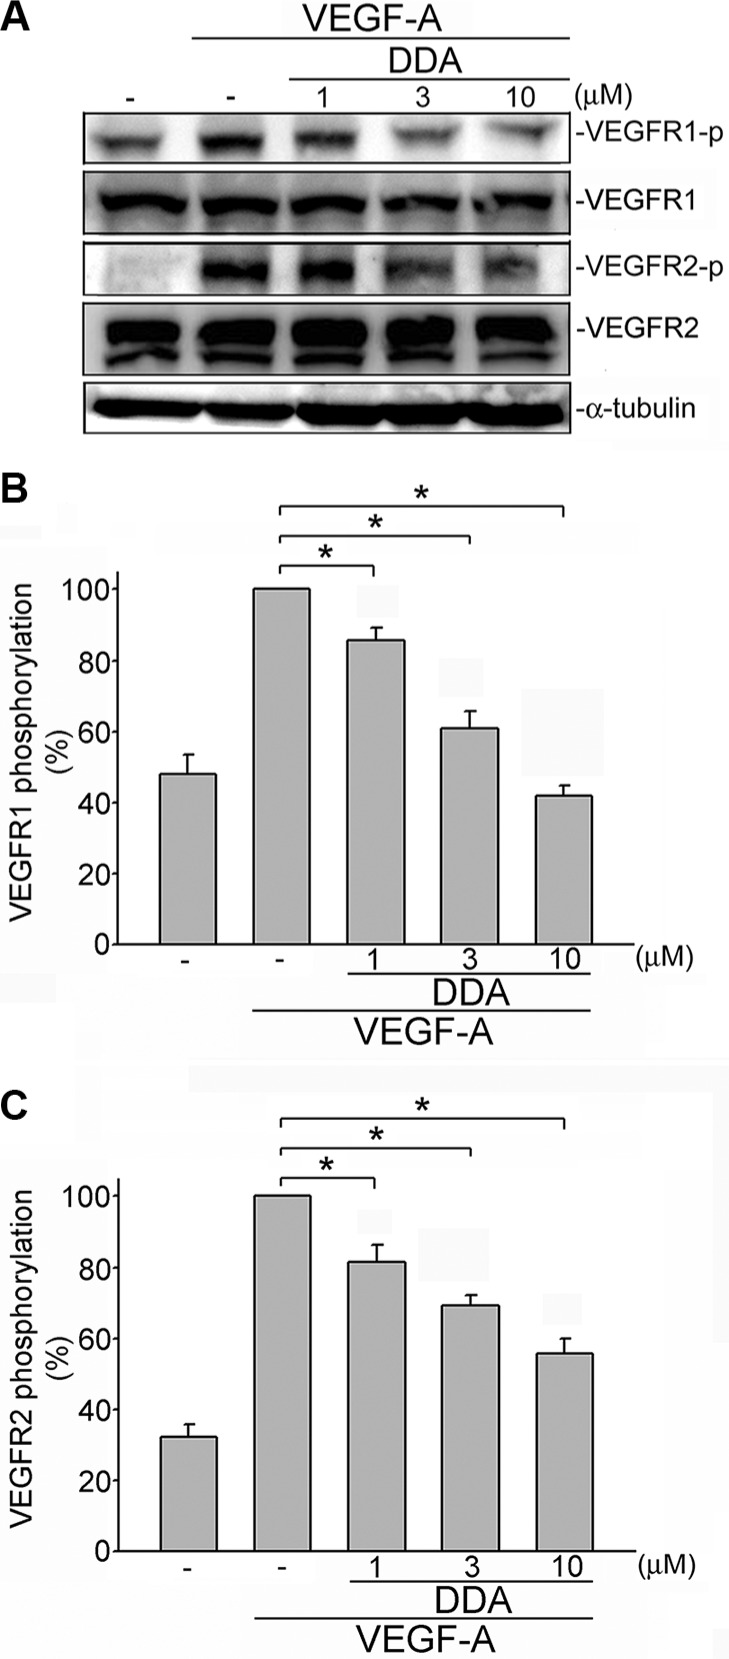 DDA inhibited VEGF-A-induced phosphorylation of VEGFR1 and VEGFR2 in HUVECs ( A ) Cells were pretreated with indicated concentrations of DDA for 30 min, followed by the addition of VEGF-A (25 ng/ml) for another 5 min. Phosphorylation status of VEGFR1 and VEGFR2 were then determined by immunoblotting. The compiled results of VEGFR1 ( B ) and VEGFR2 ( C ) are shown. Each column represents the mean ± S.E.M. of at least five independent experiments. * p